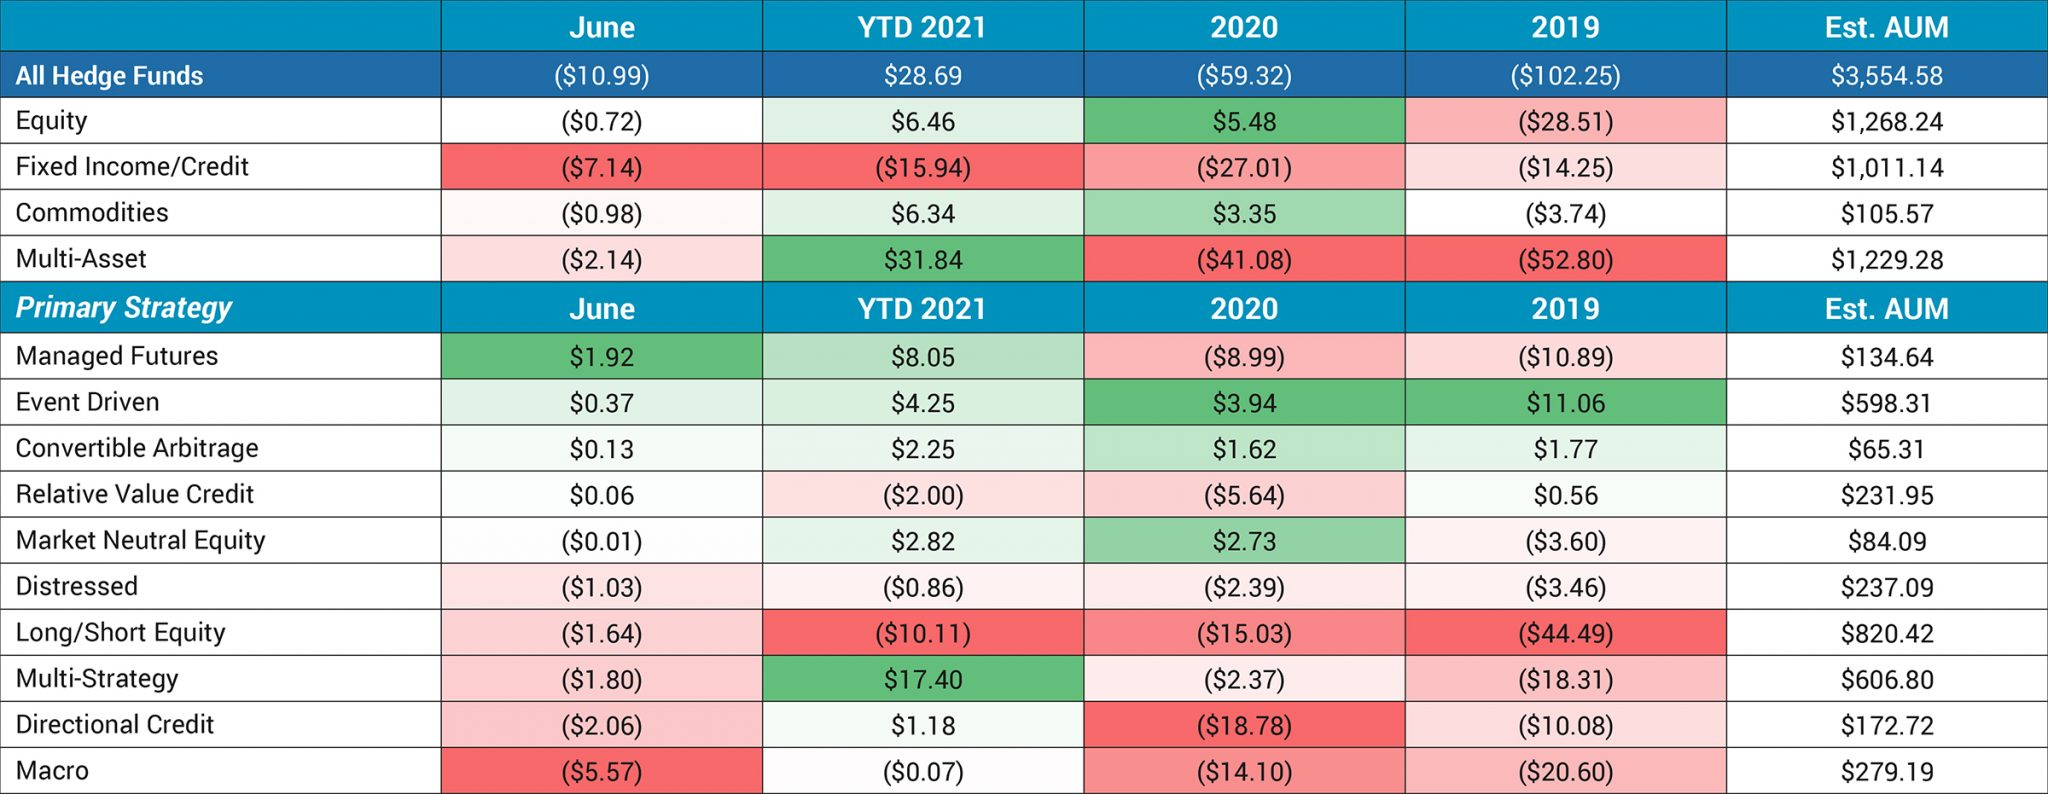 Hedge Fund Allocation By Strategy June 2021 Evestment